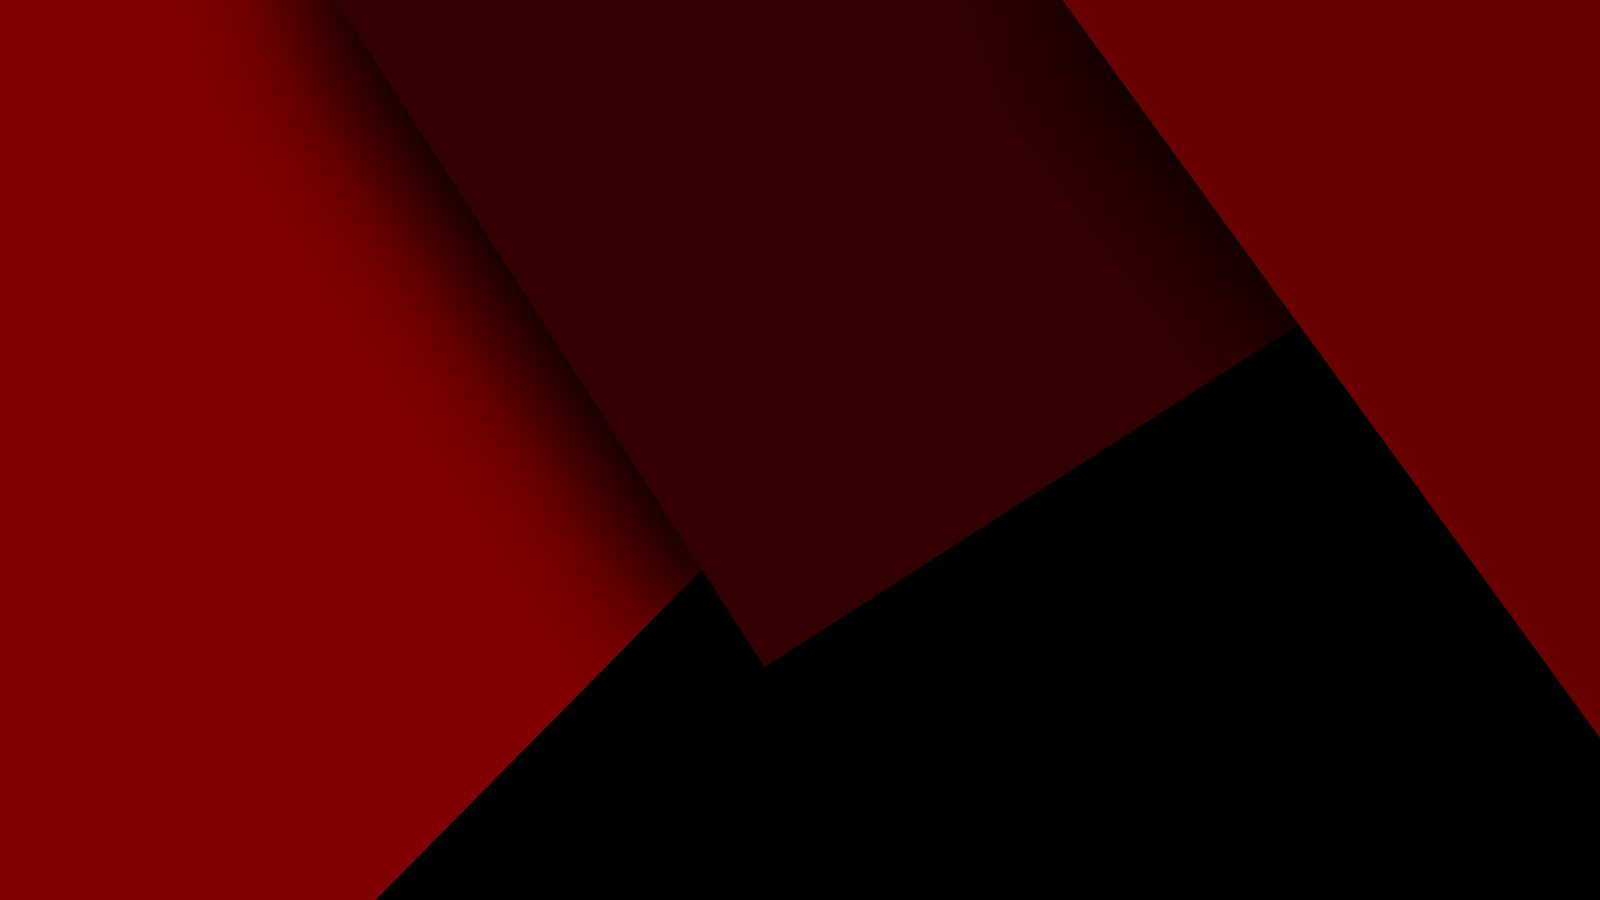 1600x900 Dark Red Black Abstract 4k 1600x900 Resolution Hd 4k Wallpapers Images Backgrounds Photos And Pictures